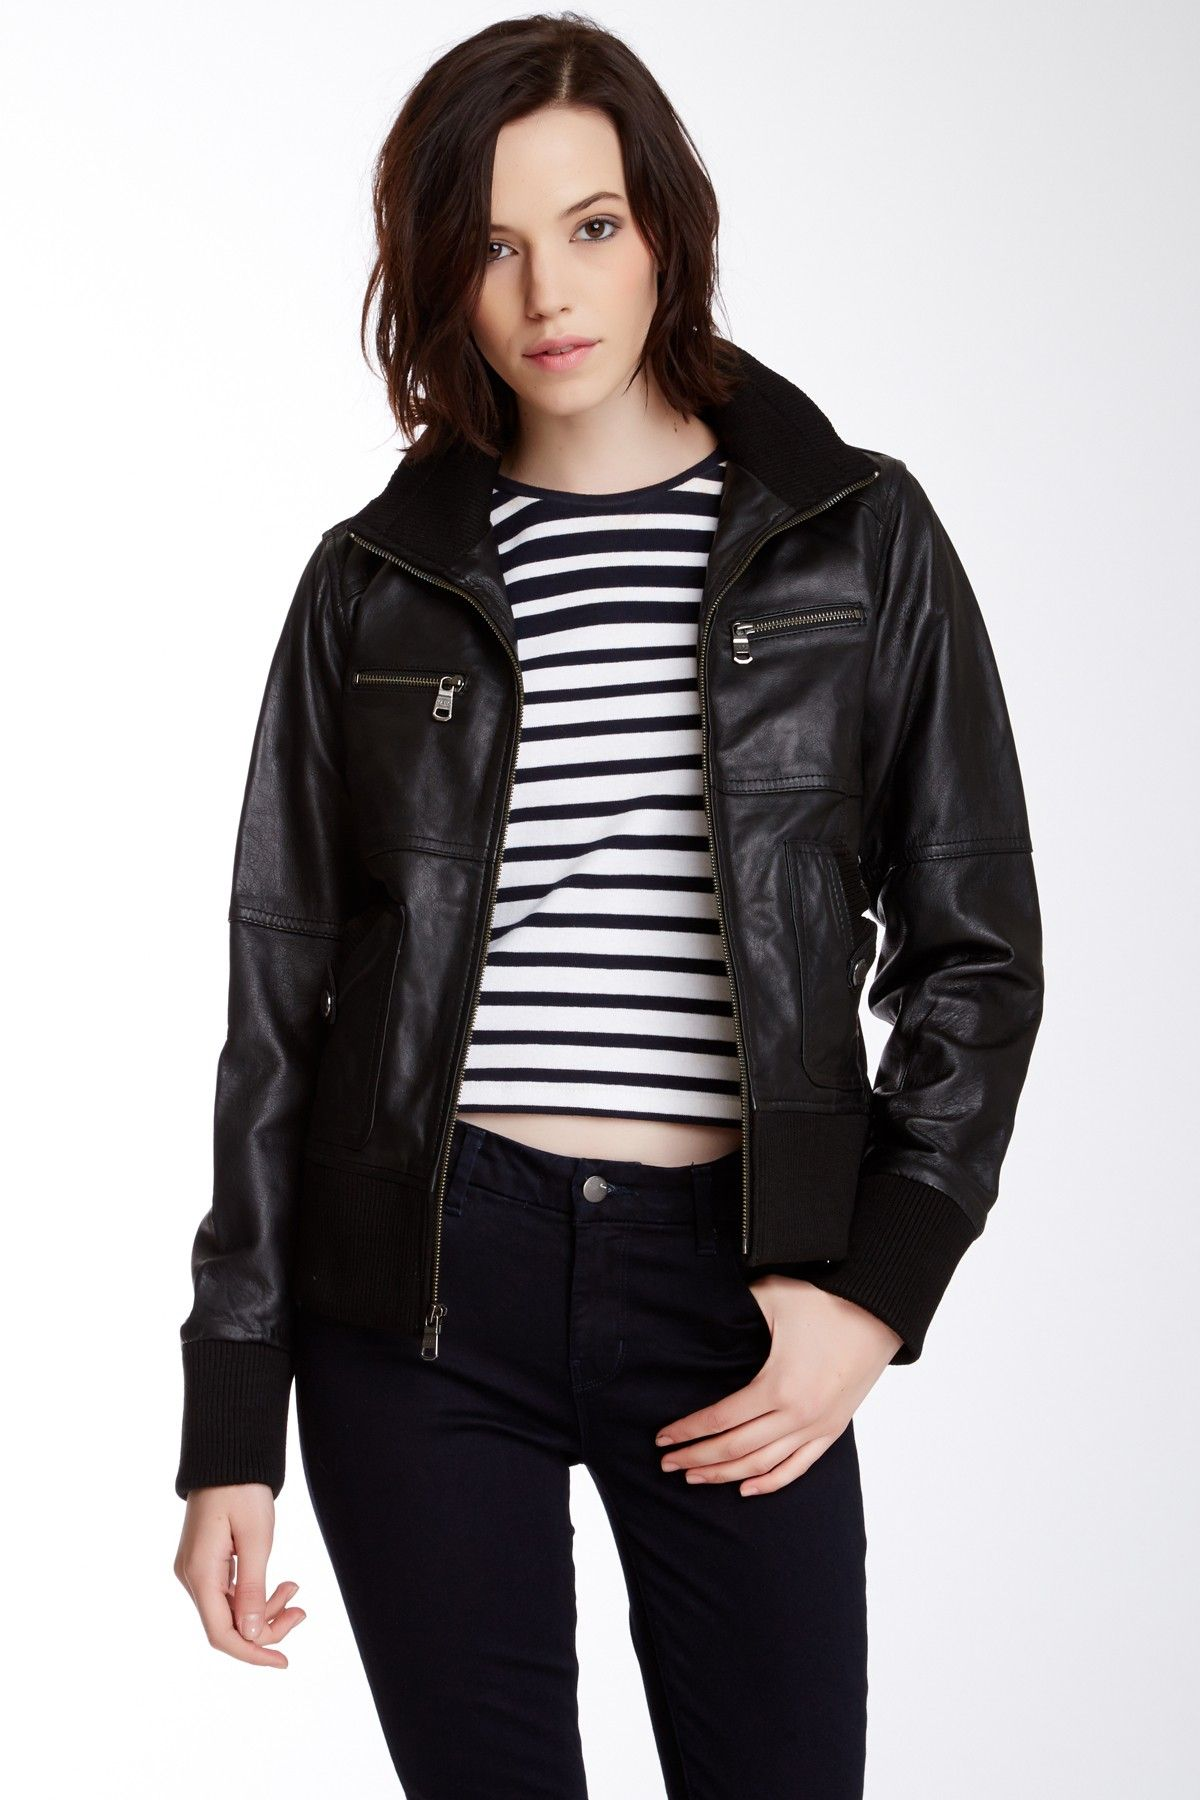 Andrew Marc Scarlett Leather Jacket Leather jacket